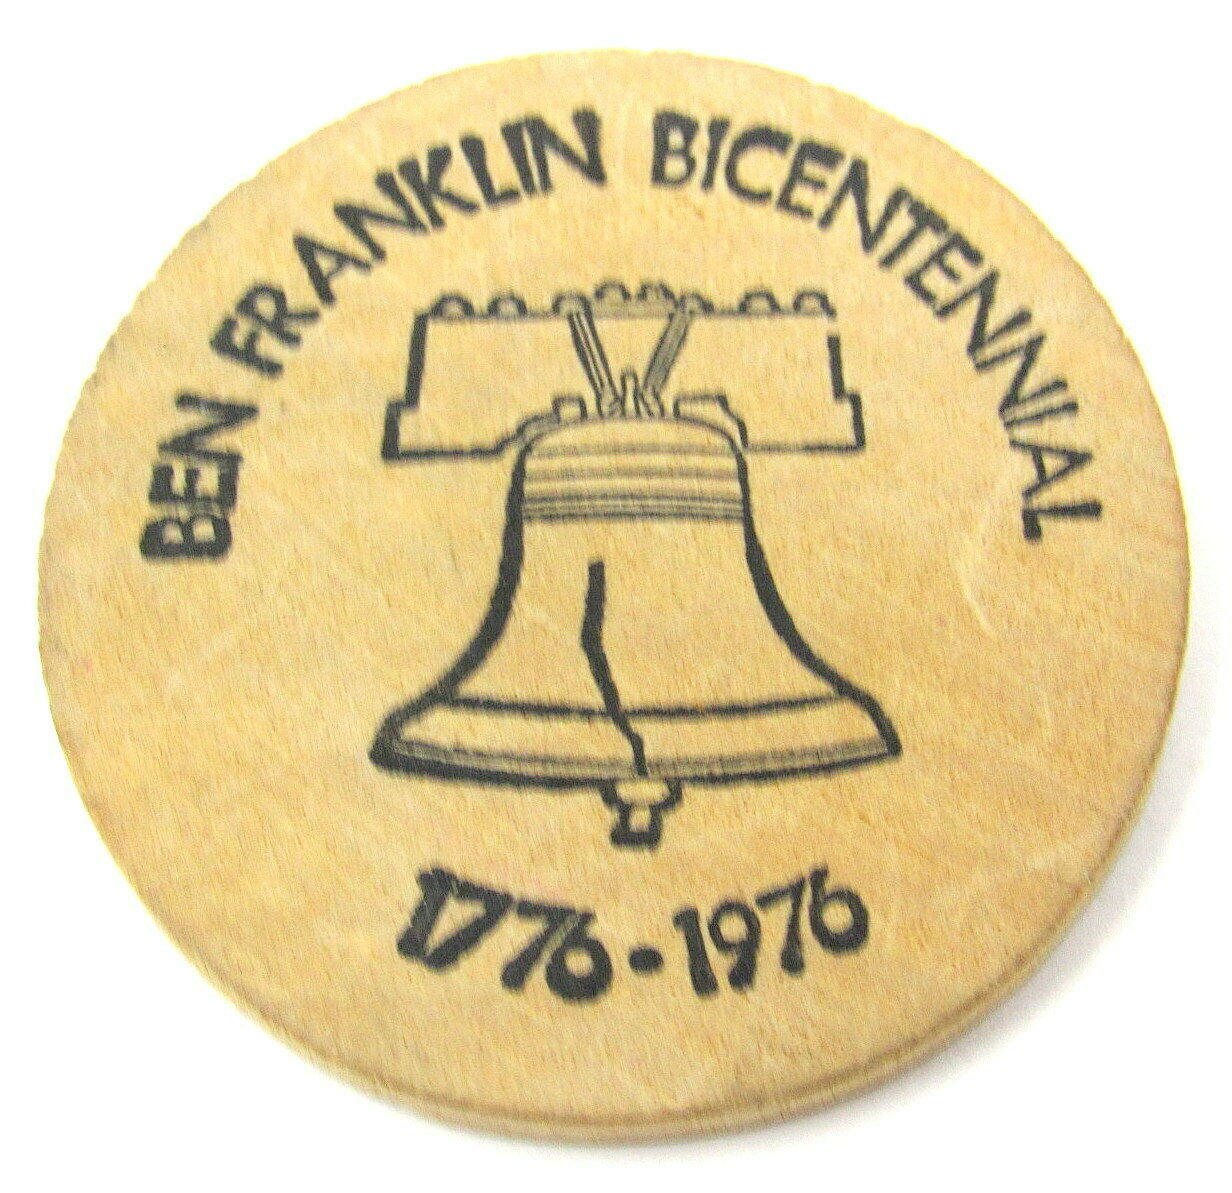 Primary image for 2 Wooden Nickels USFD 17 Franklin Square NY Give A Cheer for Bicentennial Year